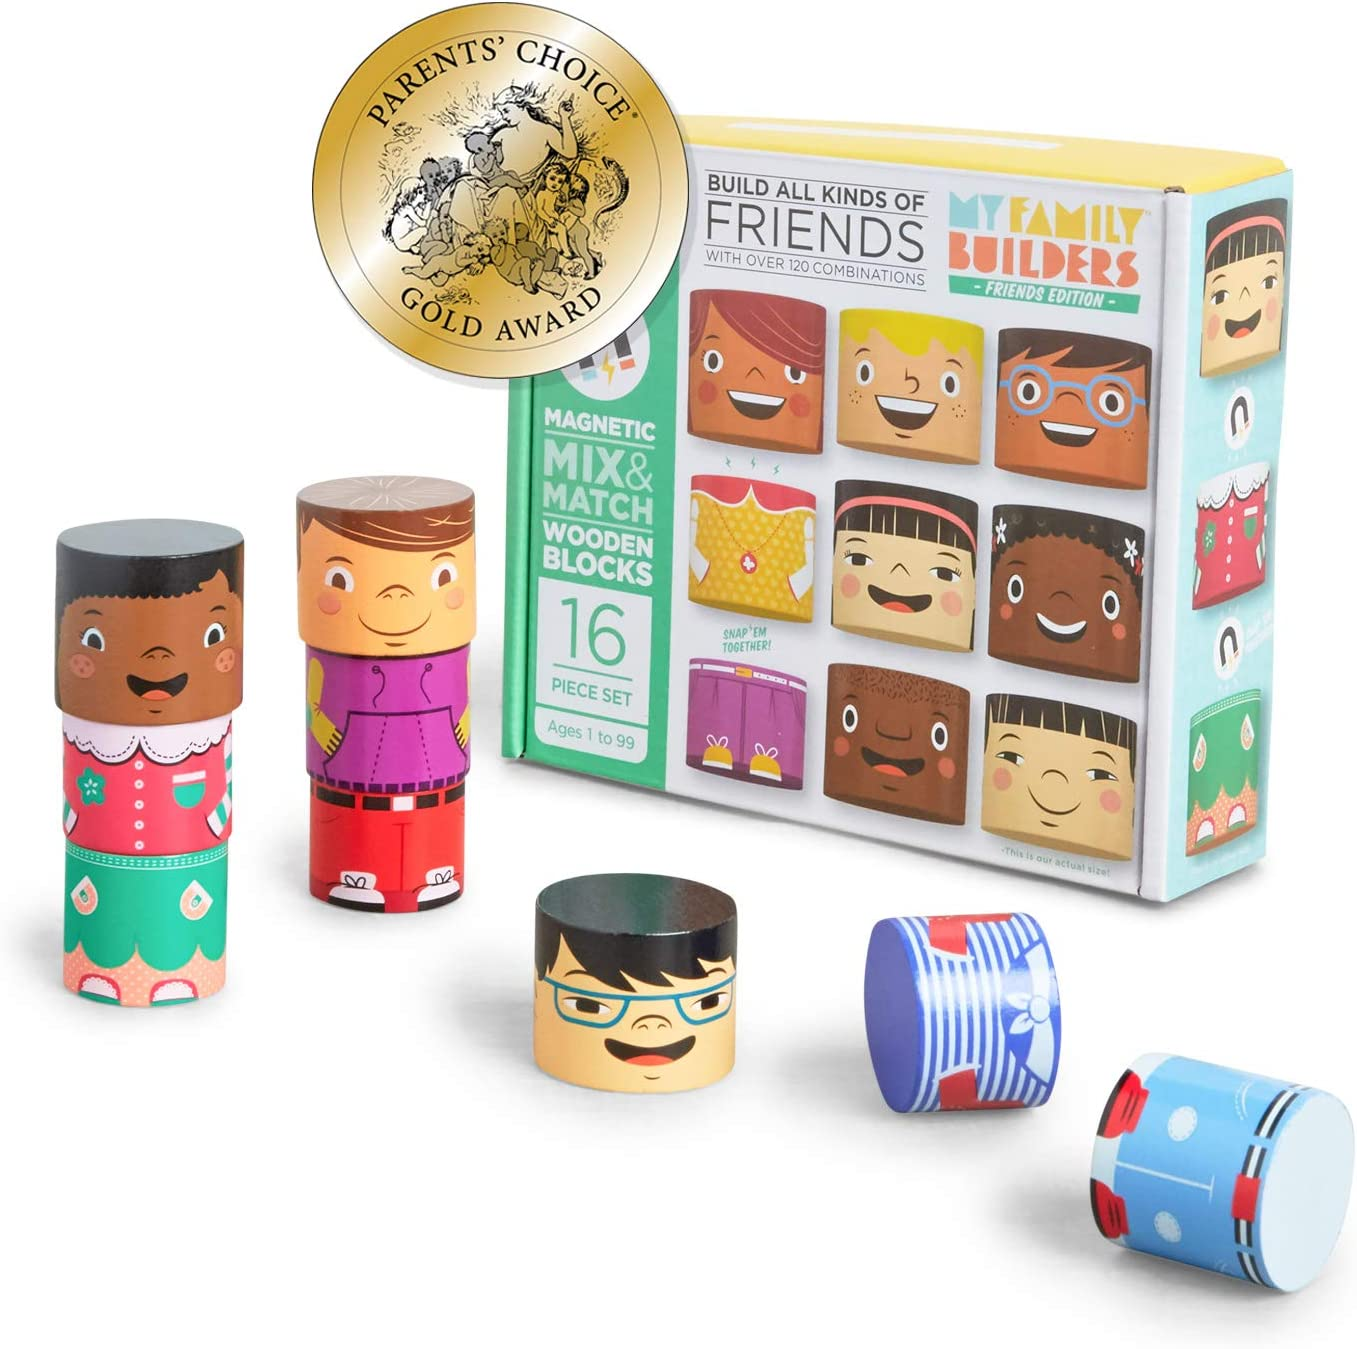 My Family Sales Award results No. 1 Builders Friends Edition Diversity Blocks Building wit